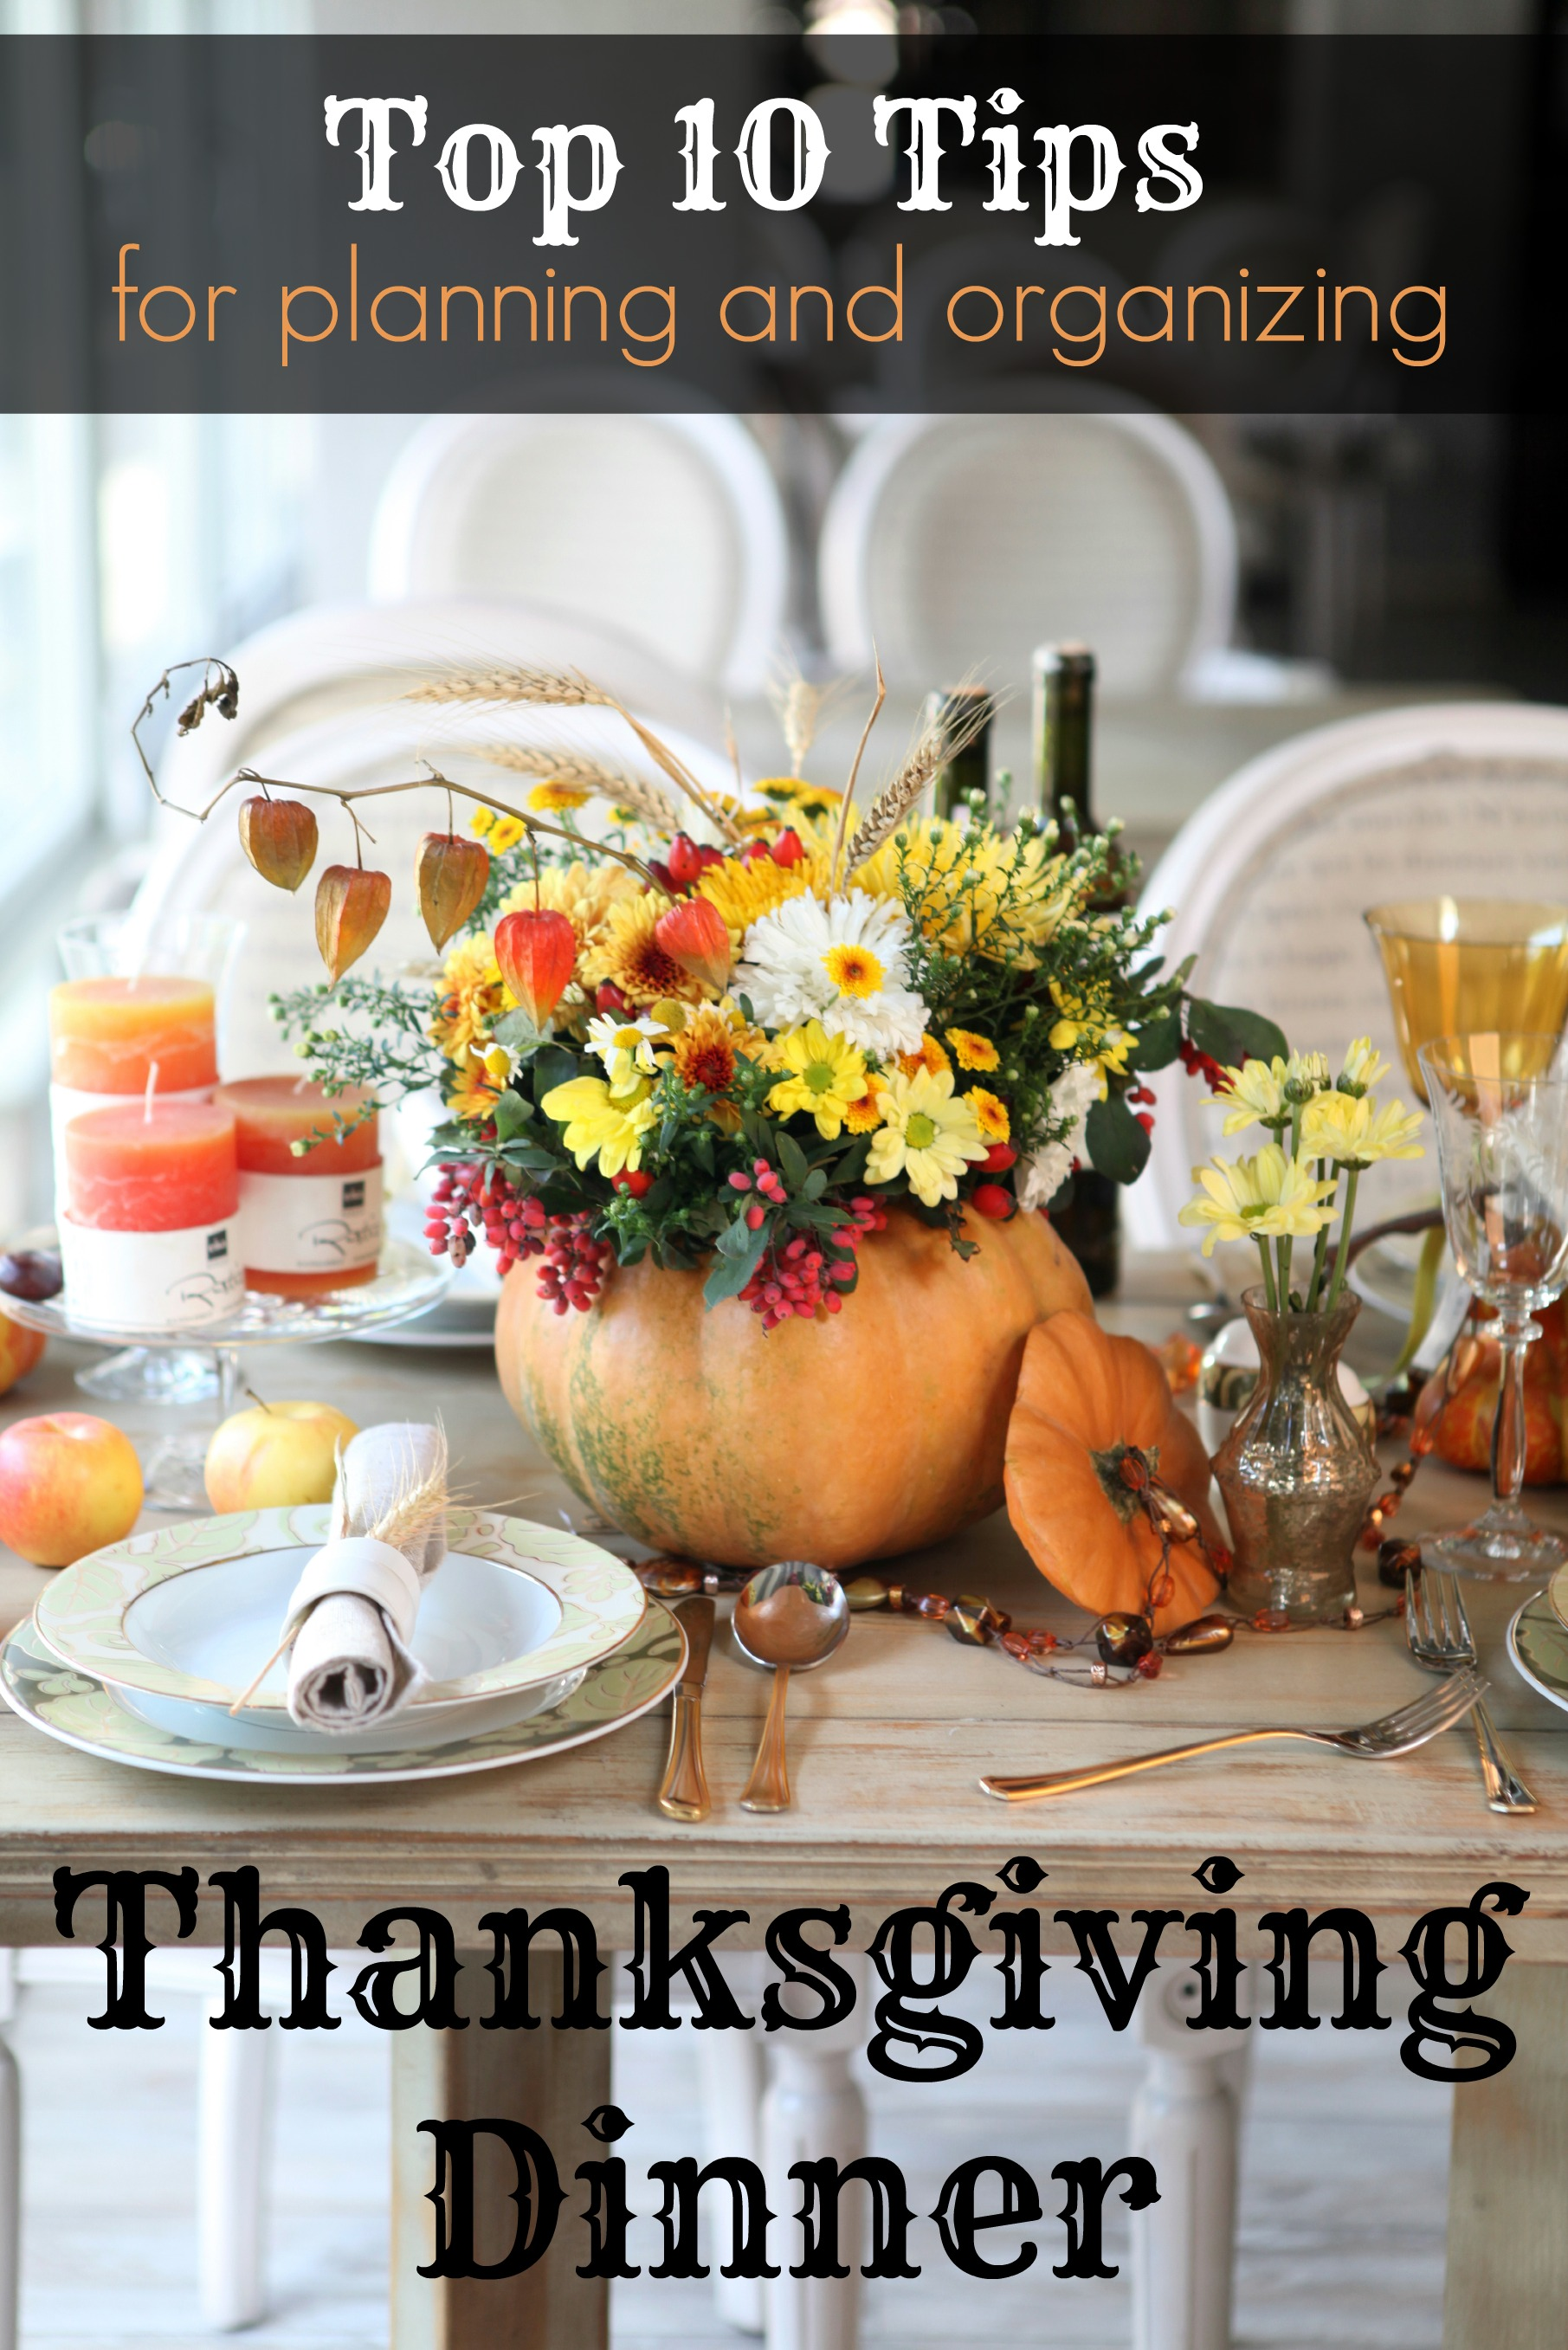 Top 10 Tips for Planning and Organizing Thanksgiving Dinner